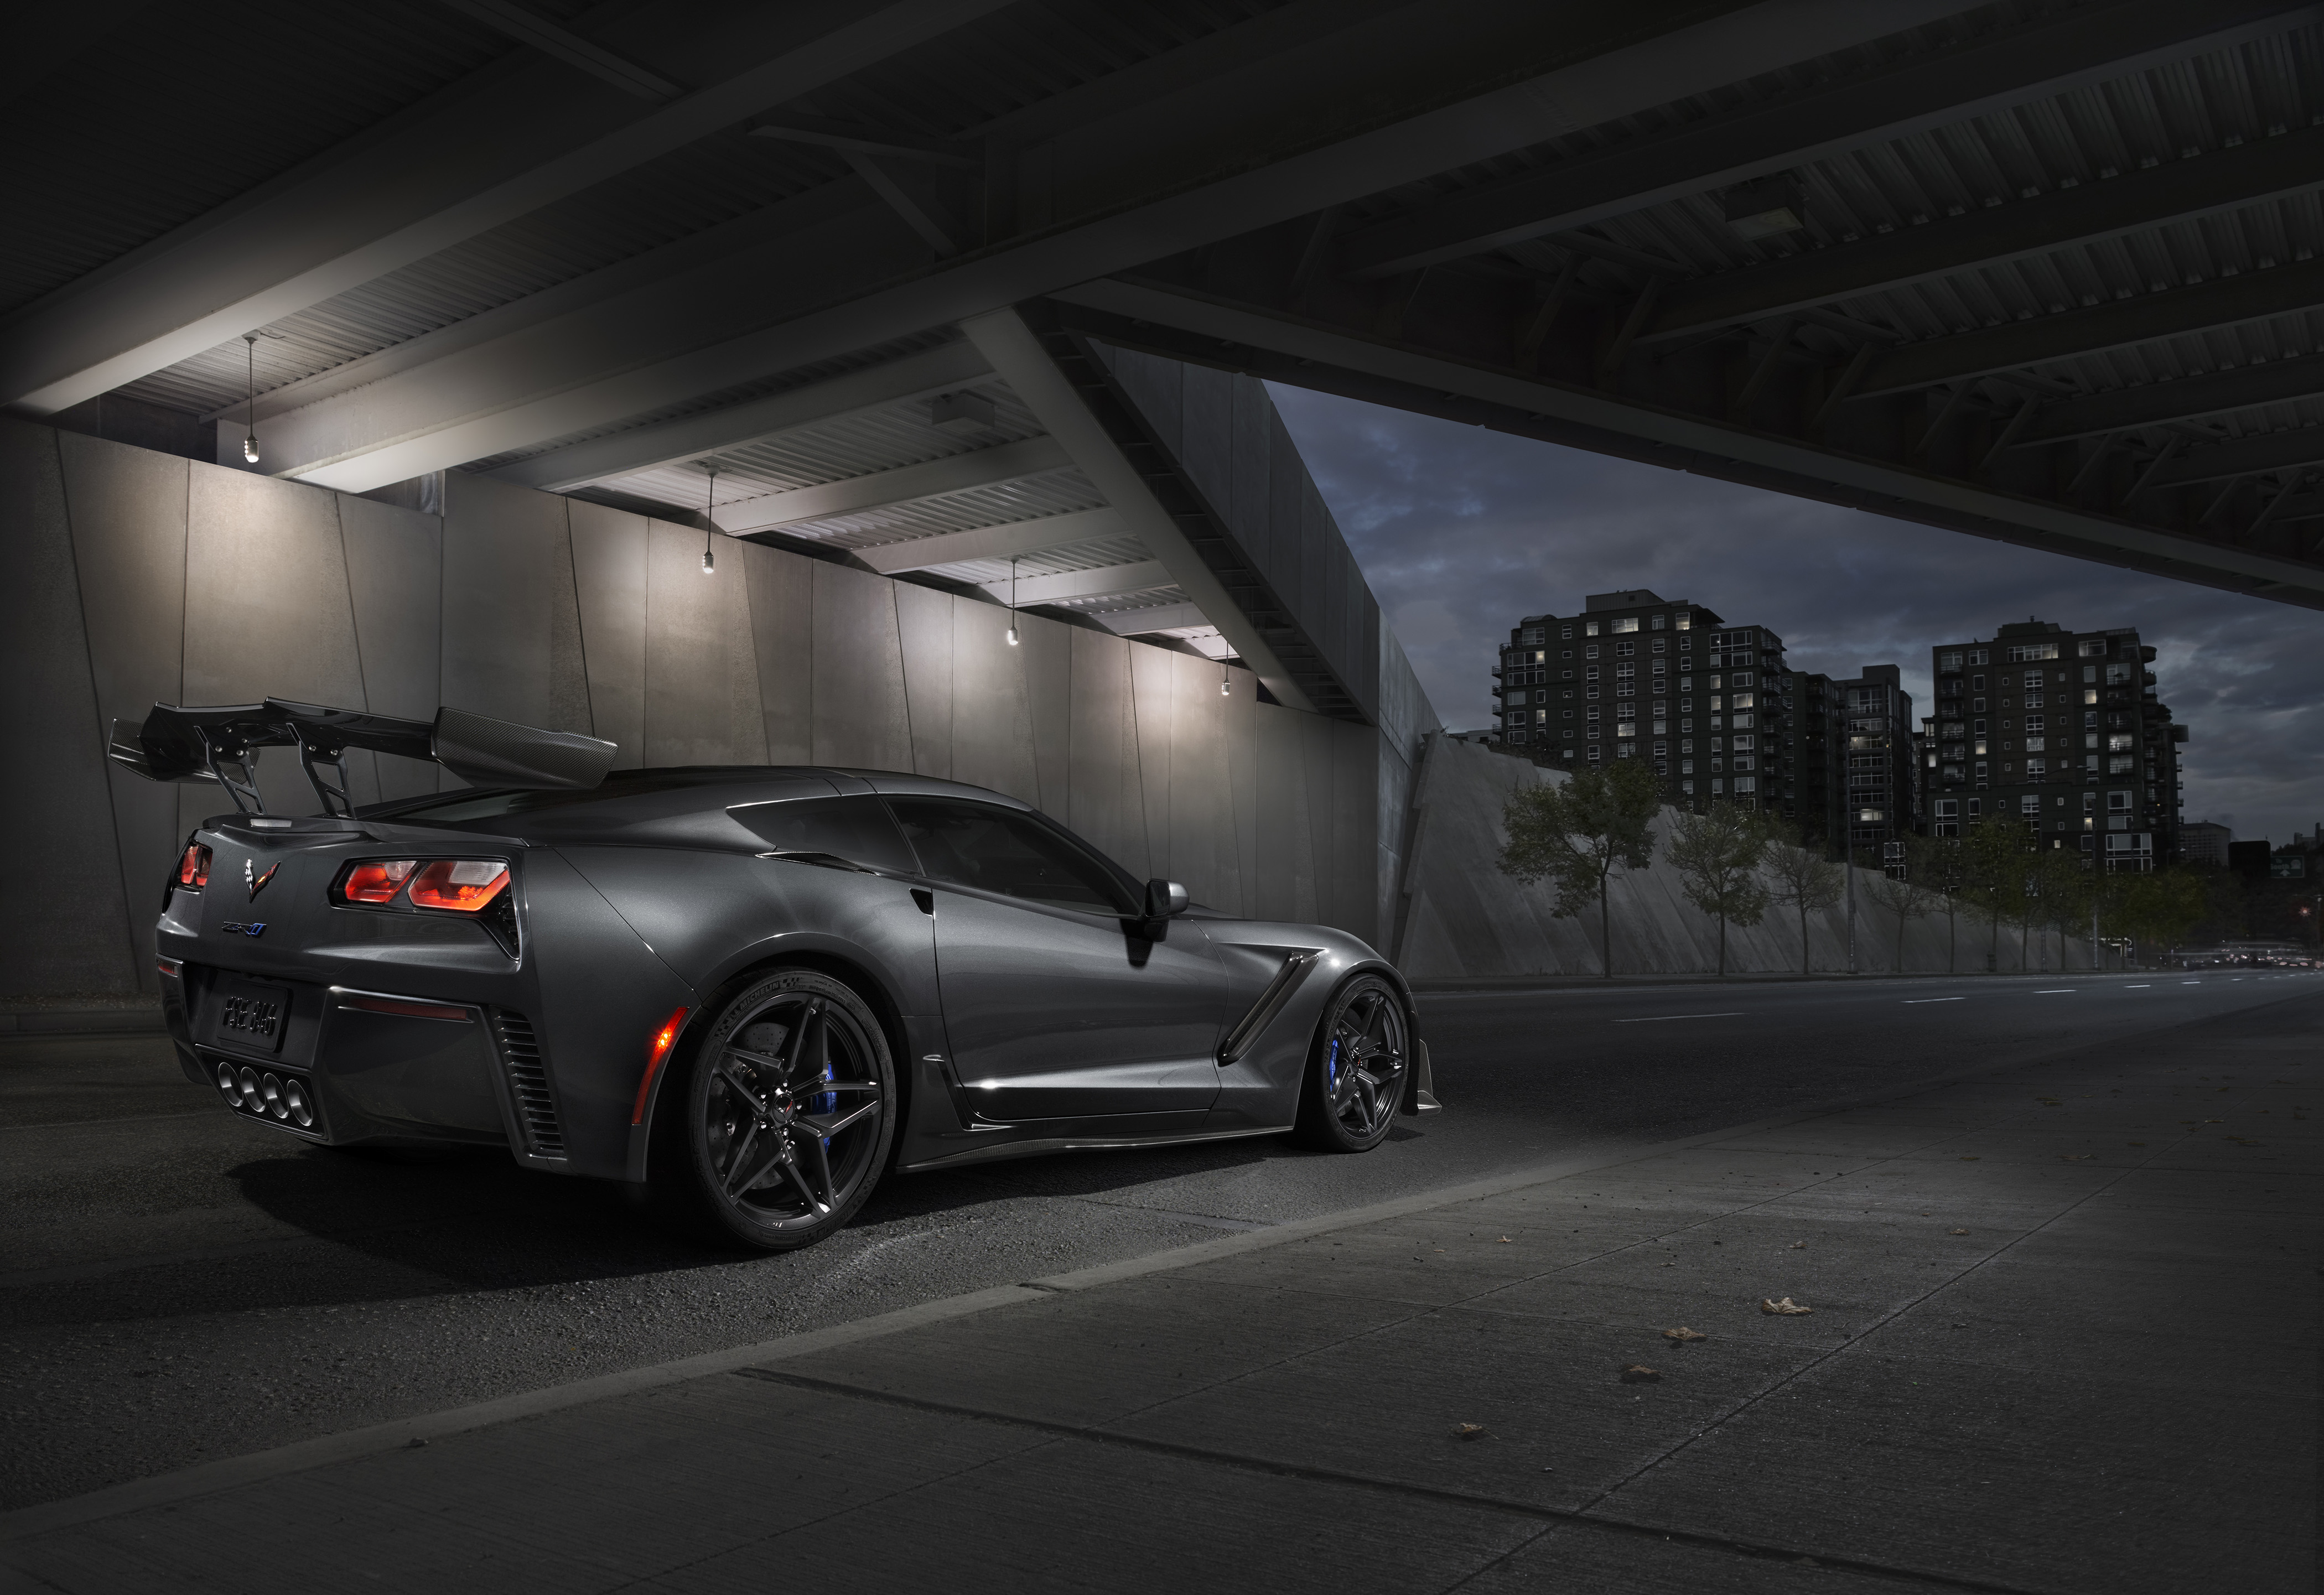 Key Differences Between The C7 Corvette Zr1 And Z06